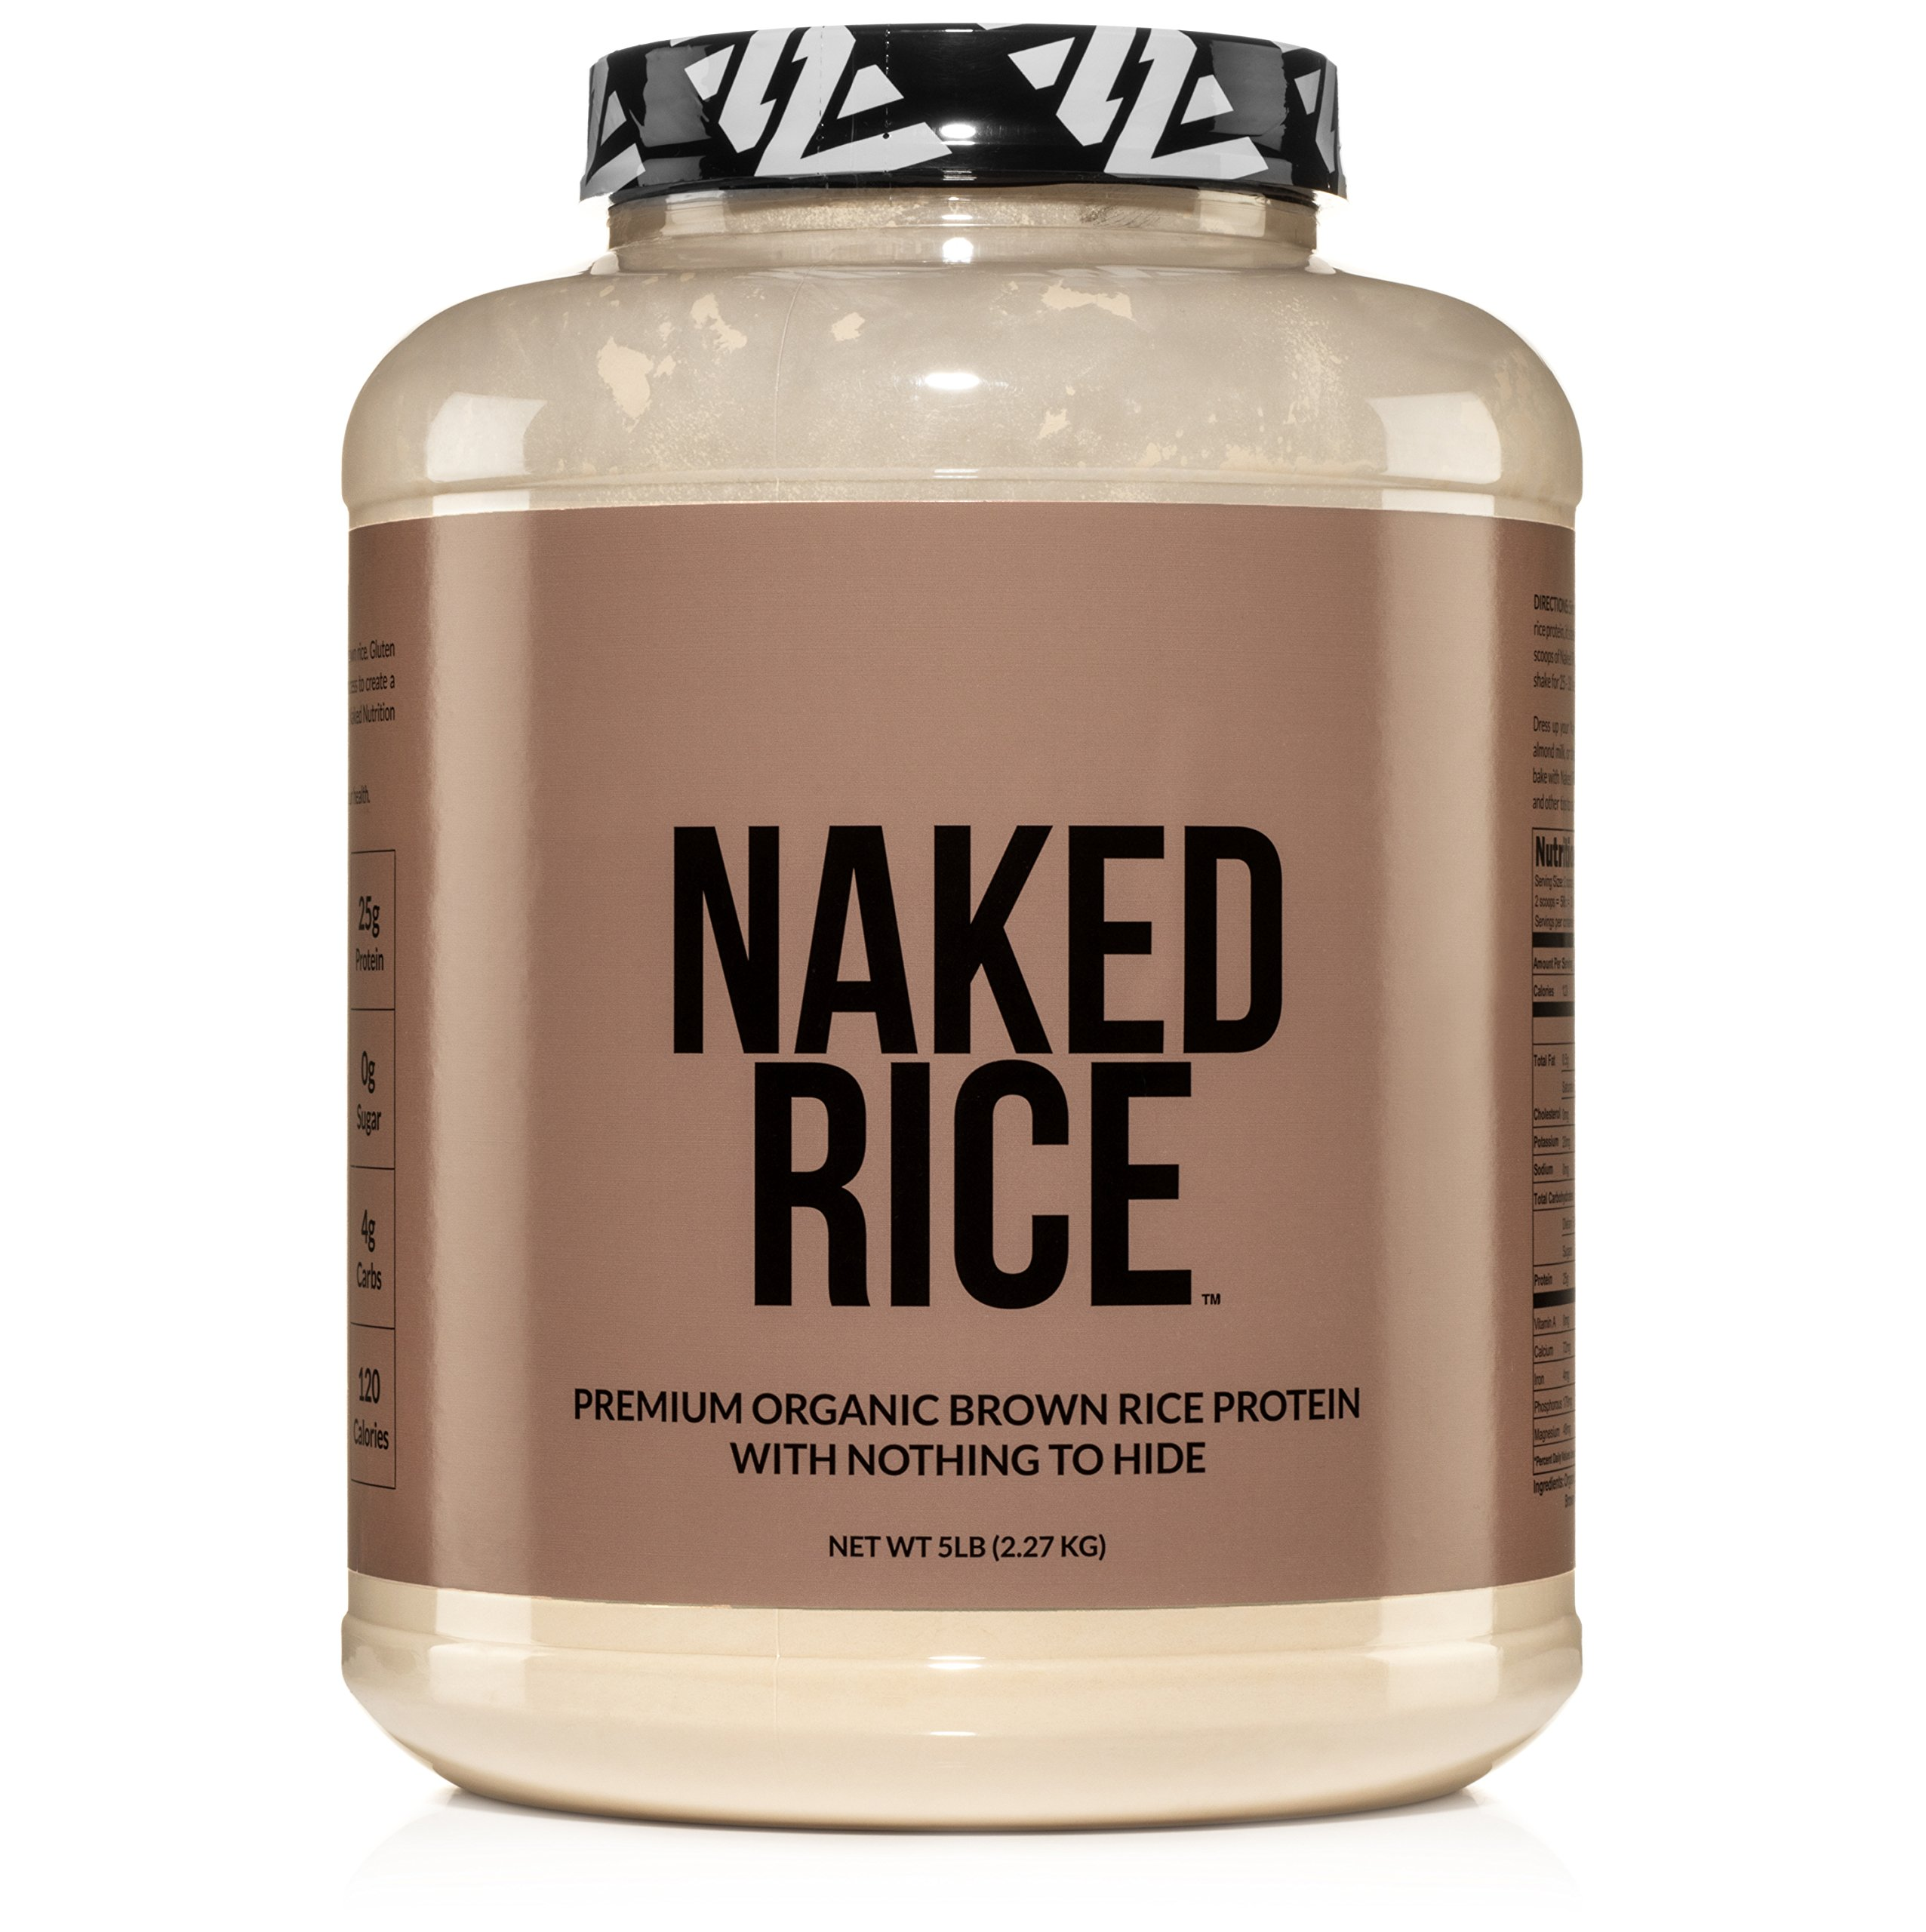 Naked Rice - Organic Brown Rice Protein Powder - Vegan Protein Powder - 5lb Bulk, GMO Free, Gluten Free & Soy Free. Plant-Based Protein, No Artificial Ingredients - 76 Servings by NAKED nutrition